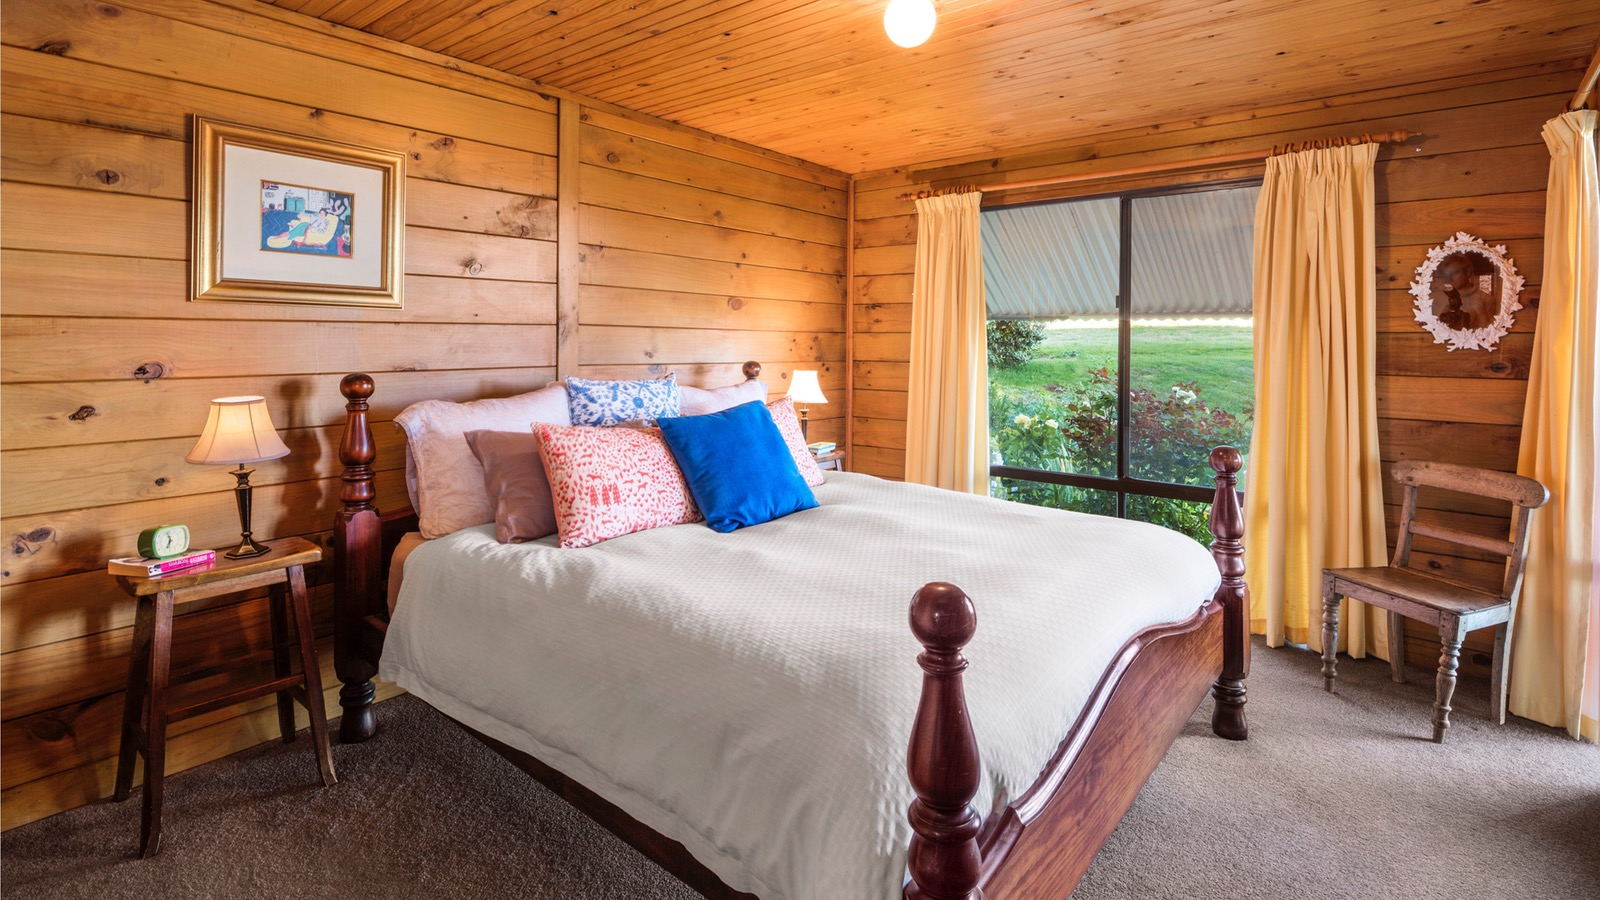 Bedroom with King Bed, The Lodge, Mt Bellevue King Valley